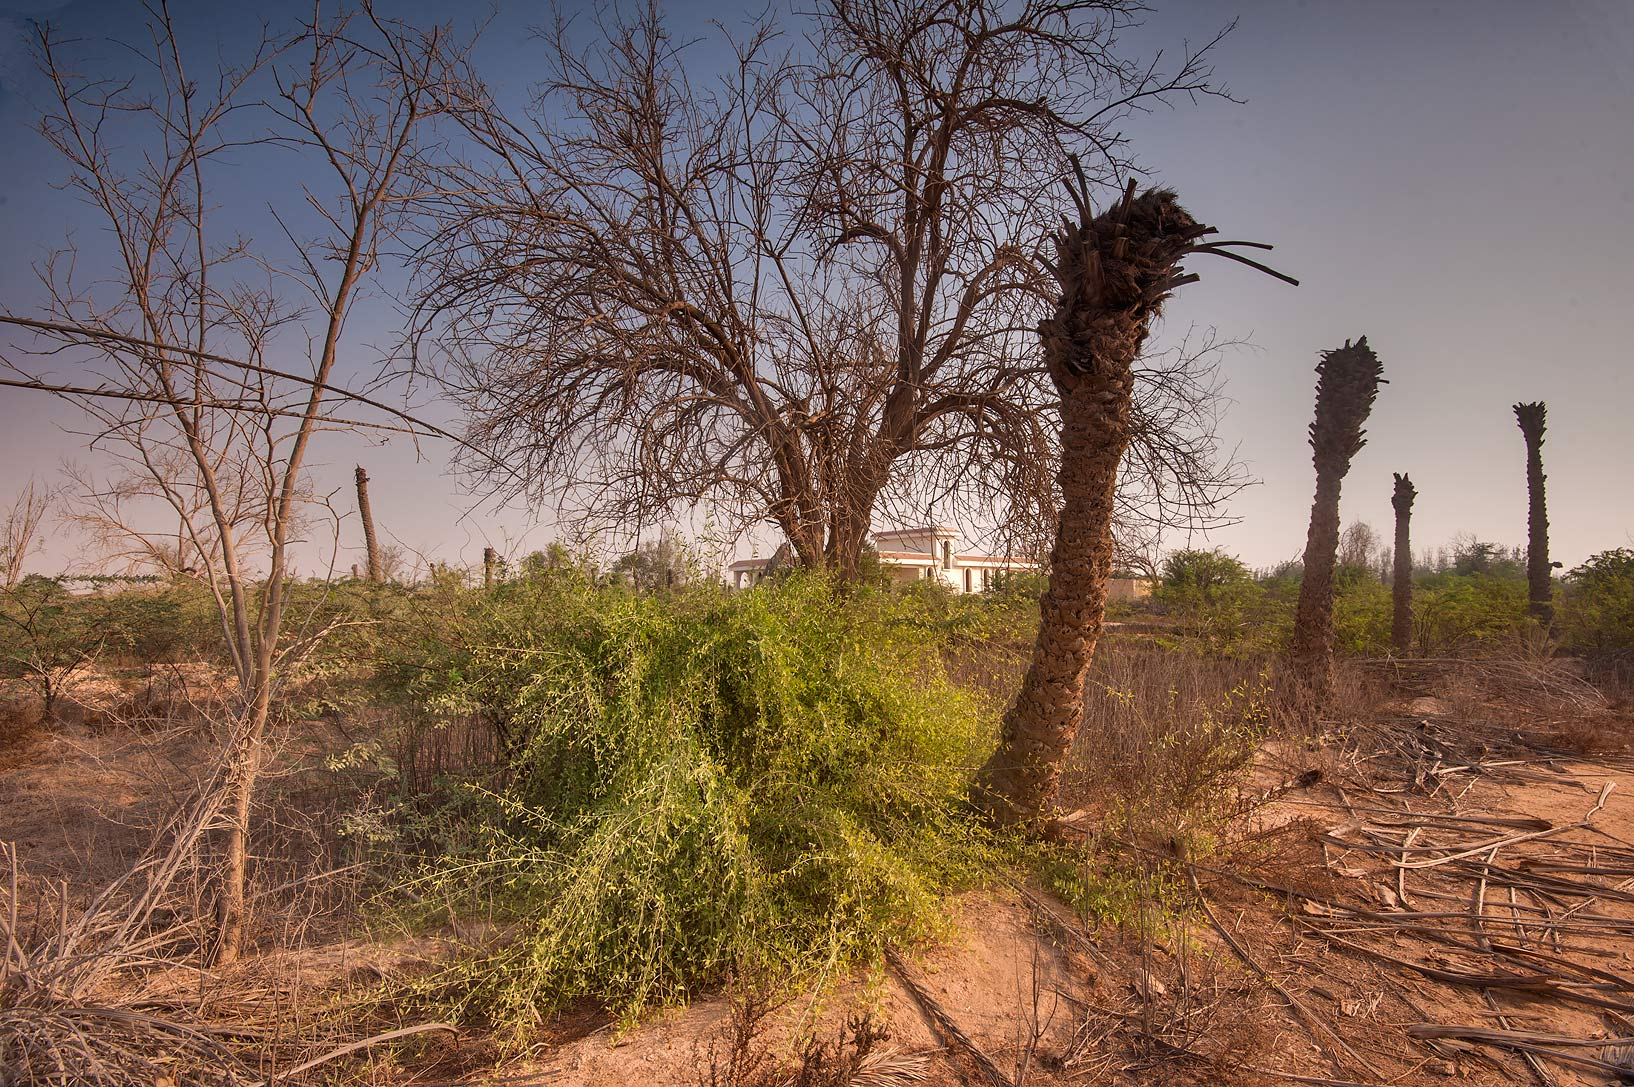 Toothbrush tree (Salvadora persica) in old garden...of Ras Laffan Farms. Northern Qatar